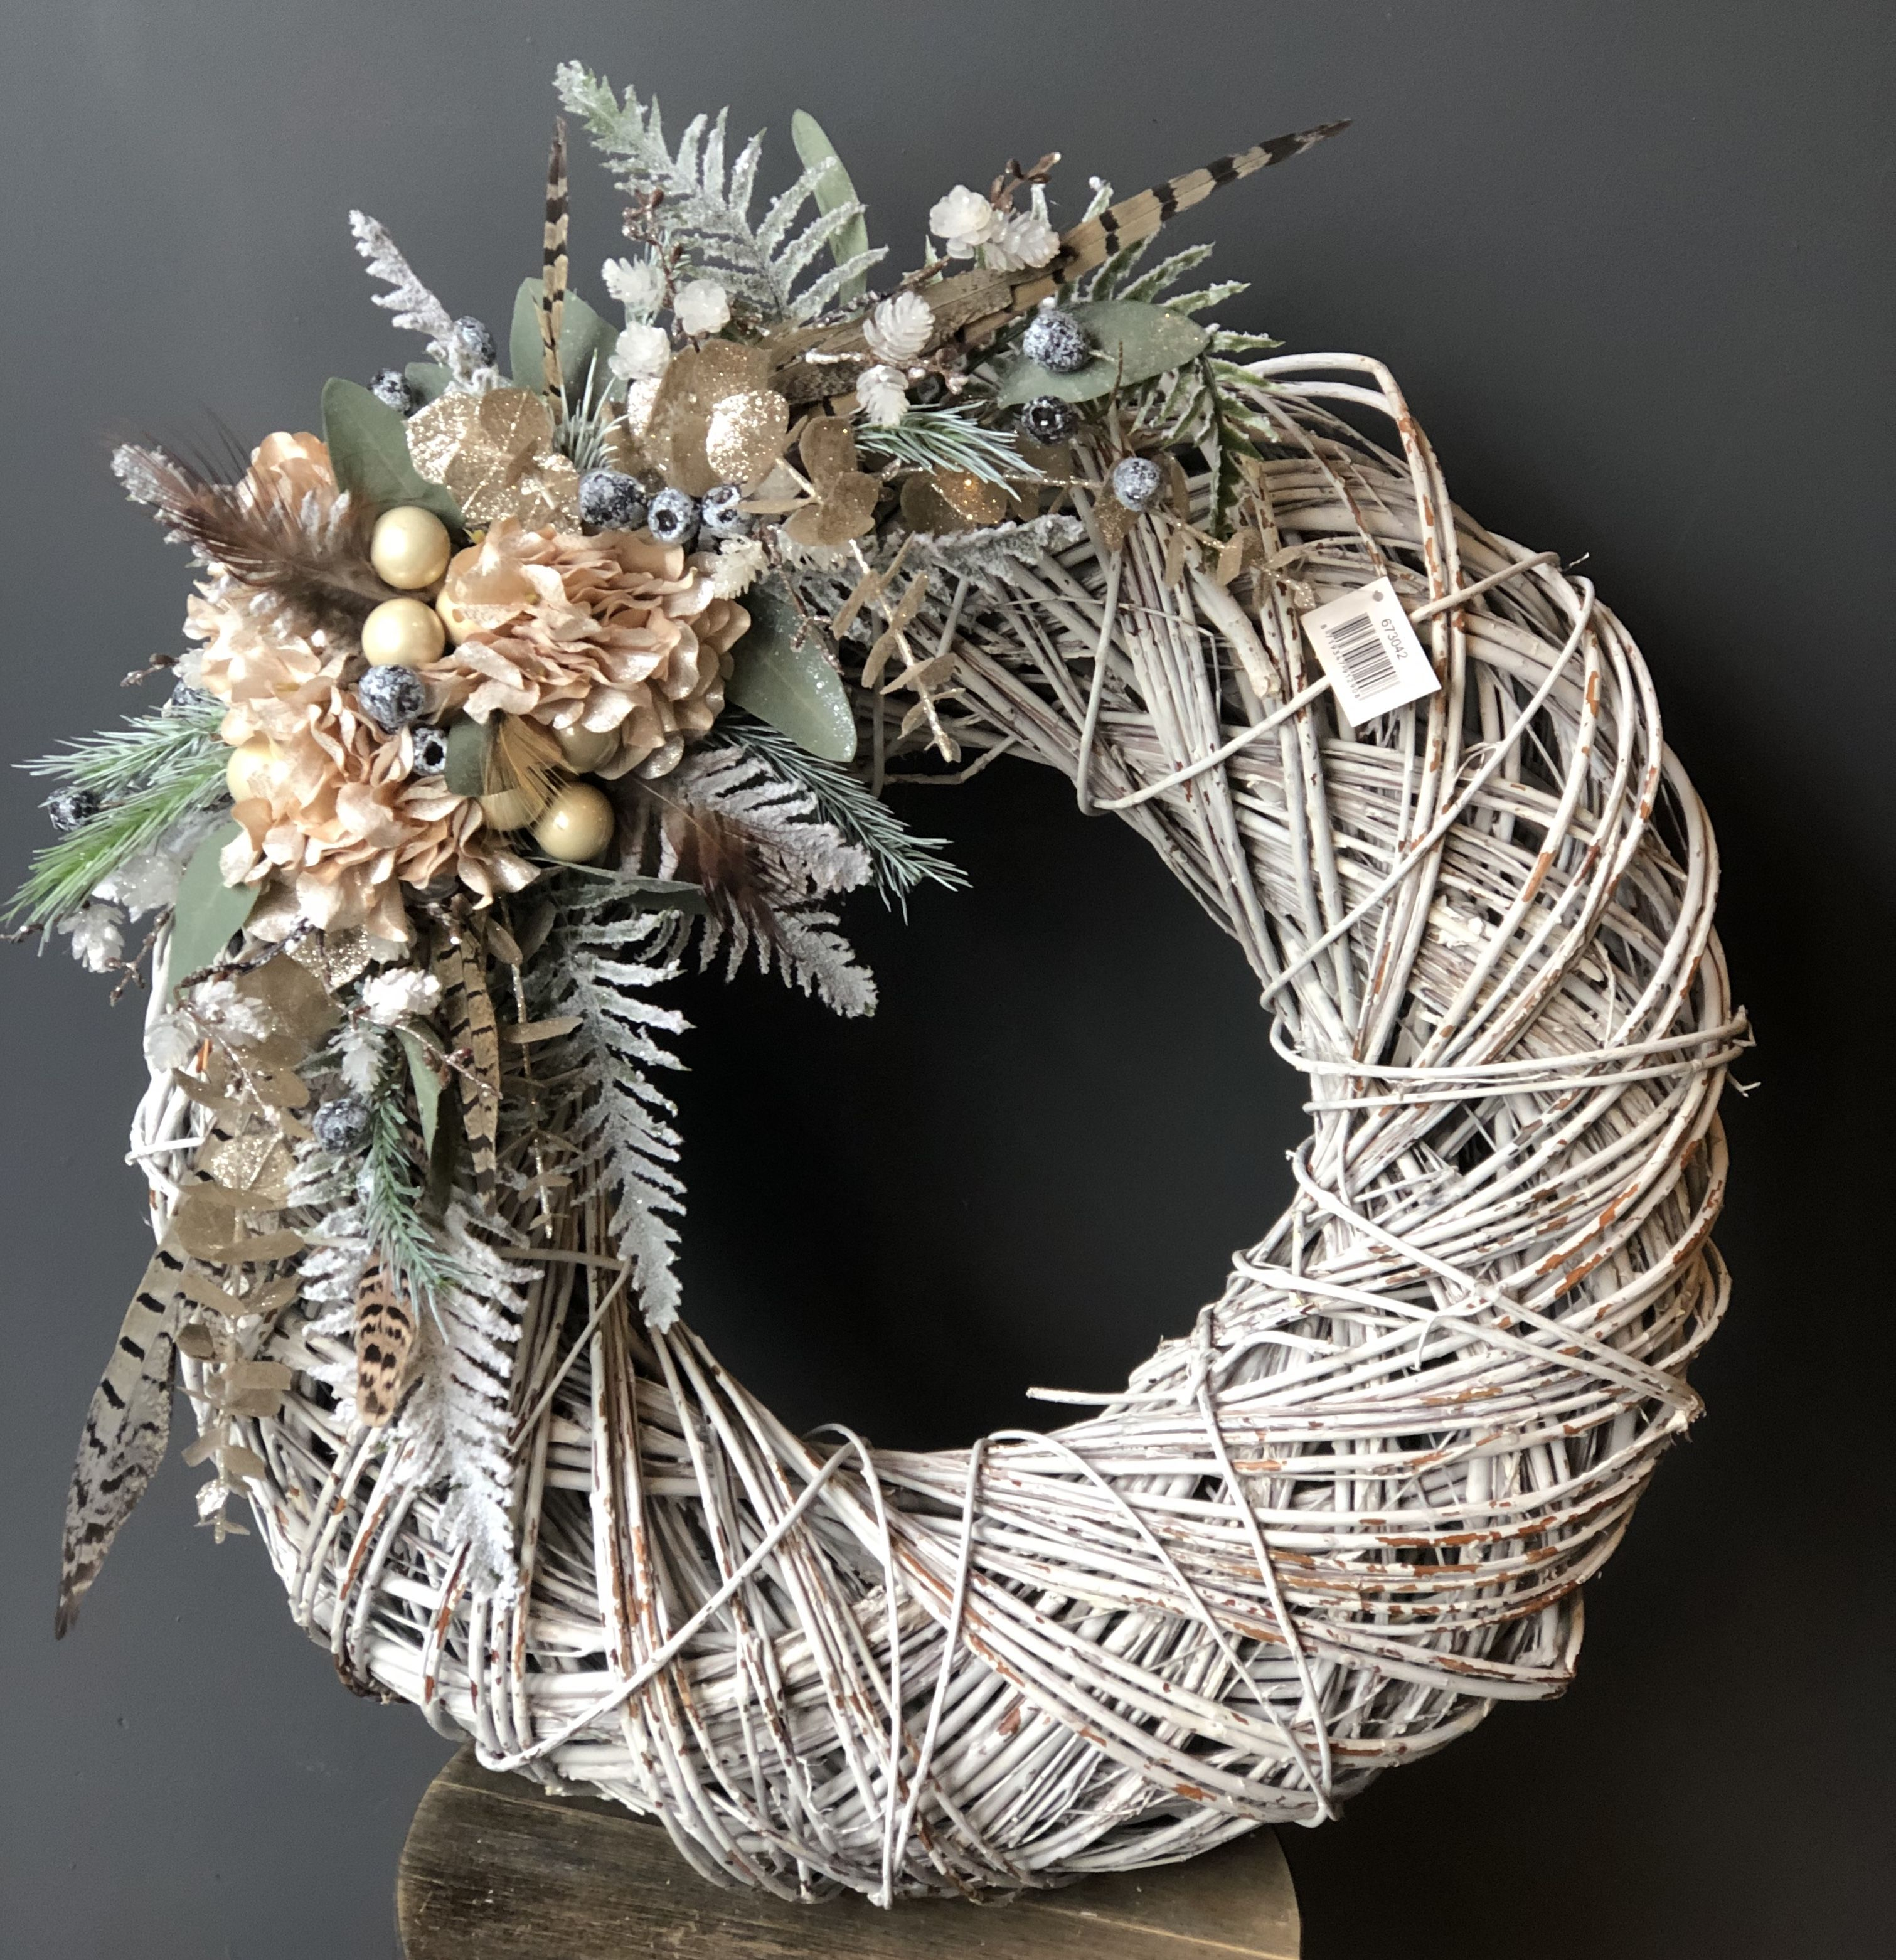 Glamorous Christmas wreath using artificial flowers